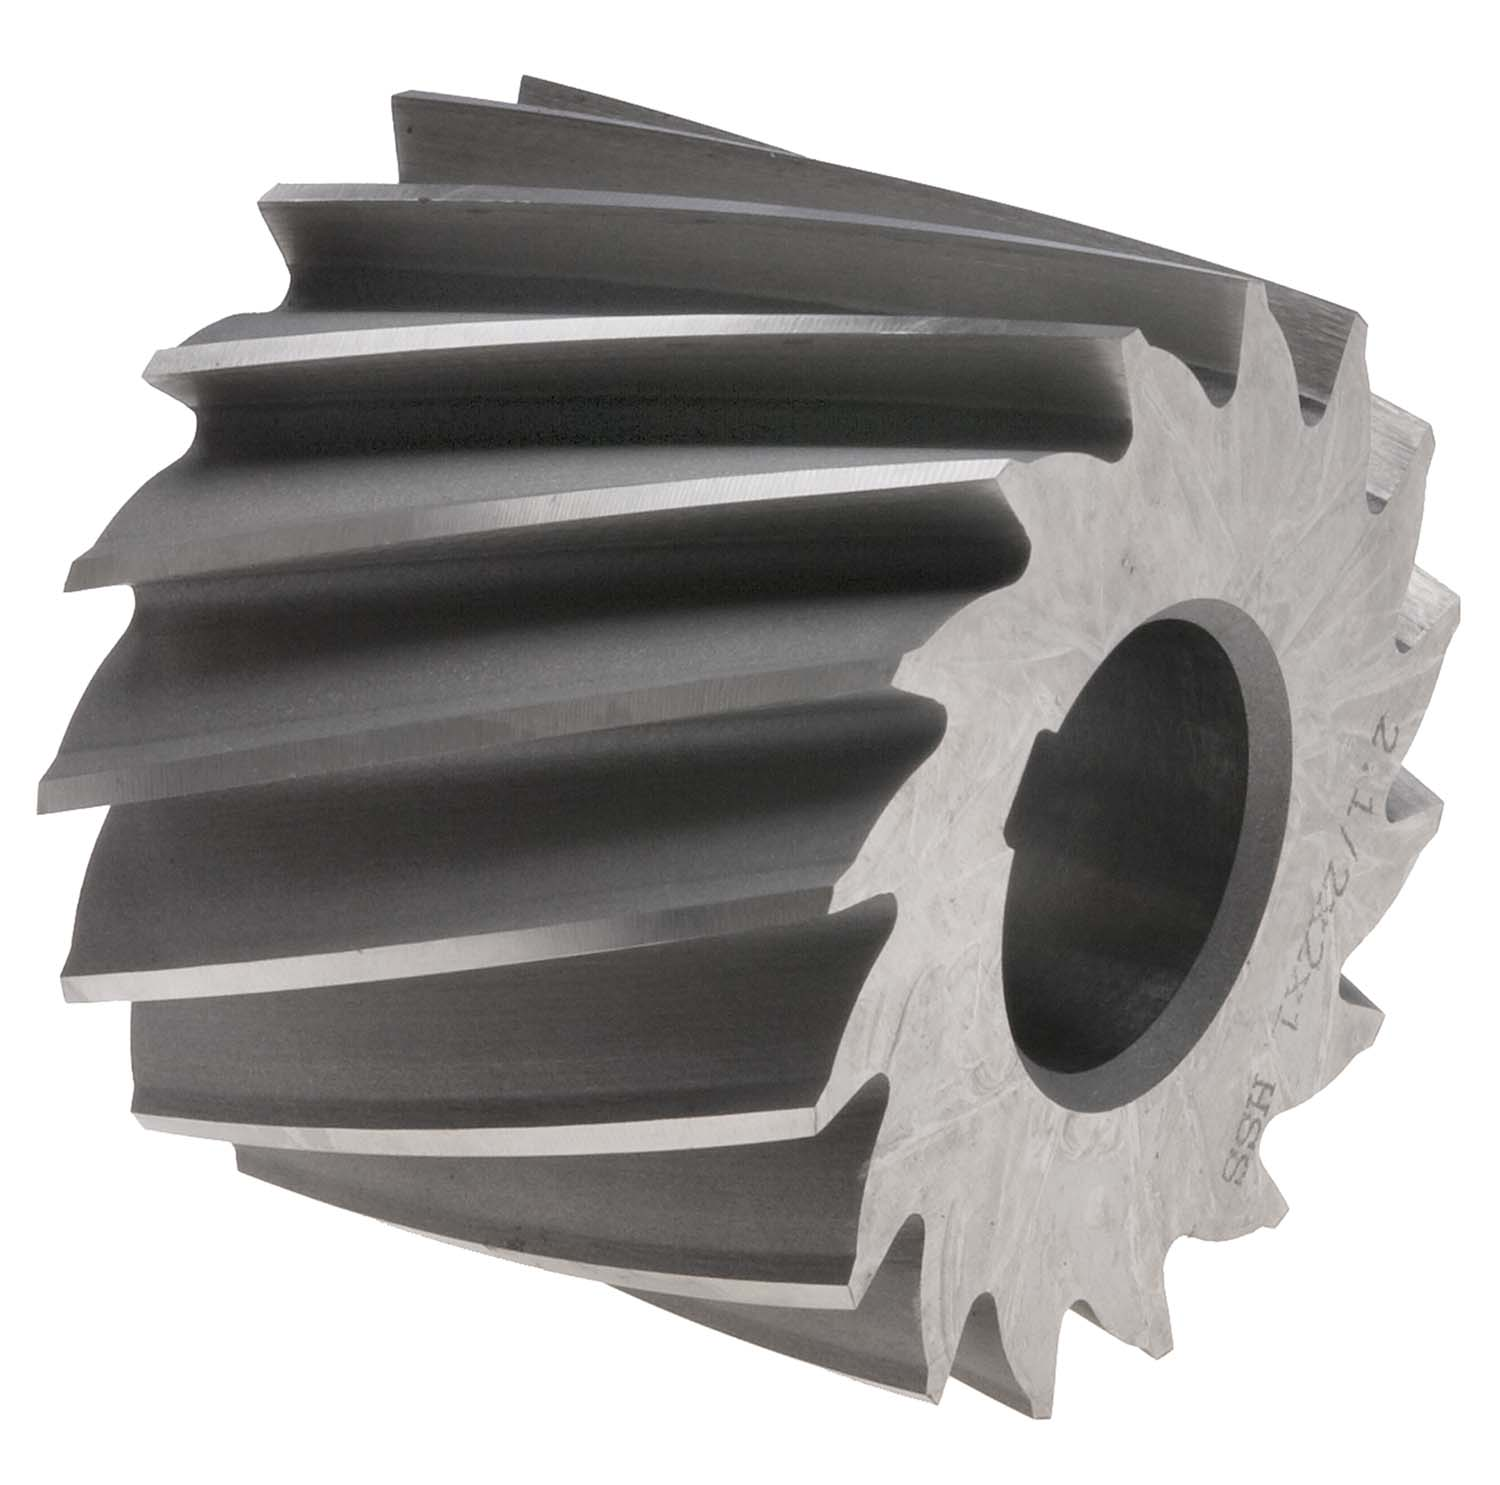 3 X 3 X 1-1/4 Plain Milling Cutter, High Speed Steel